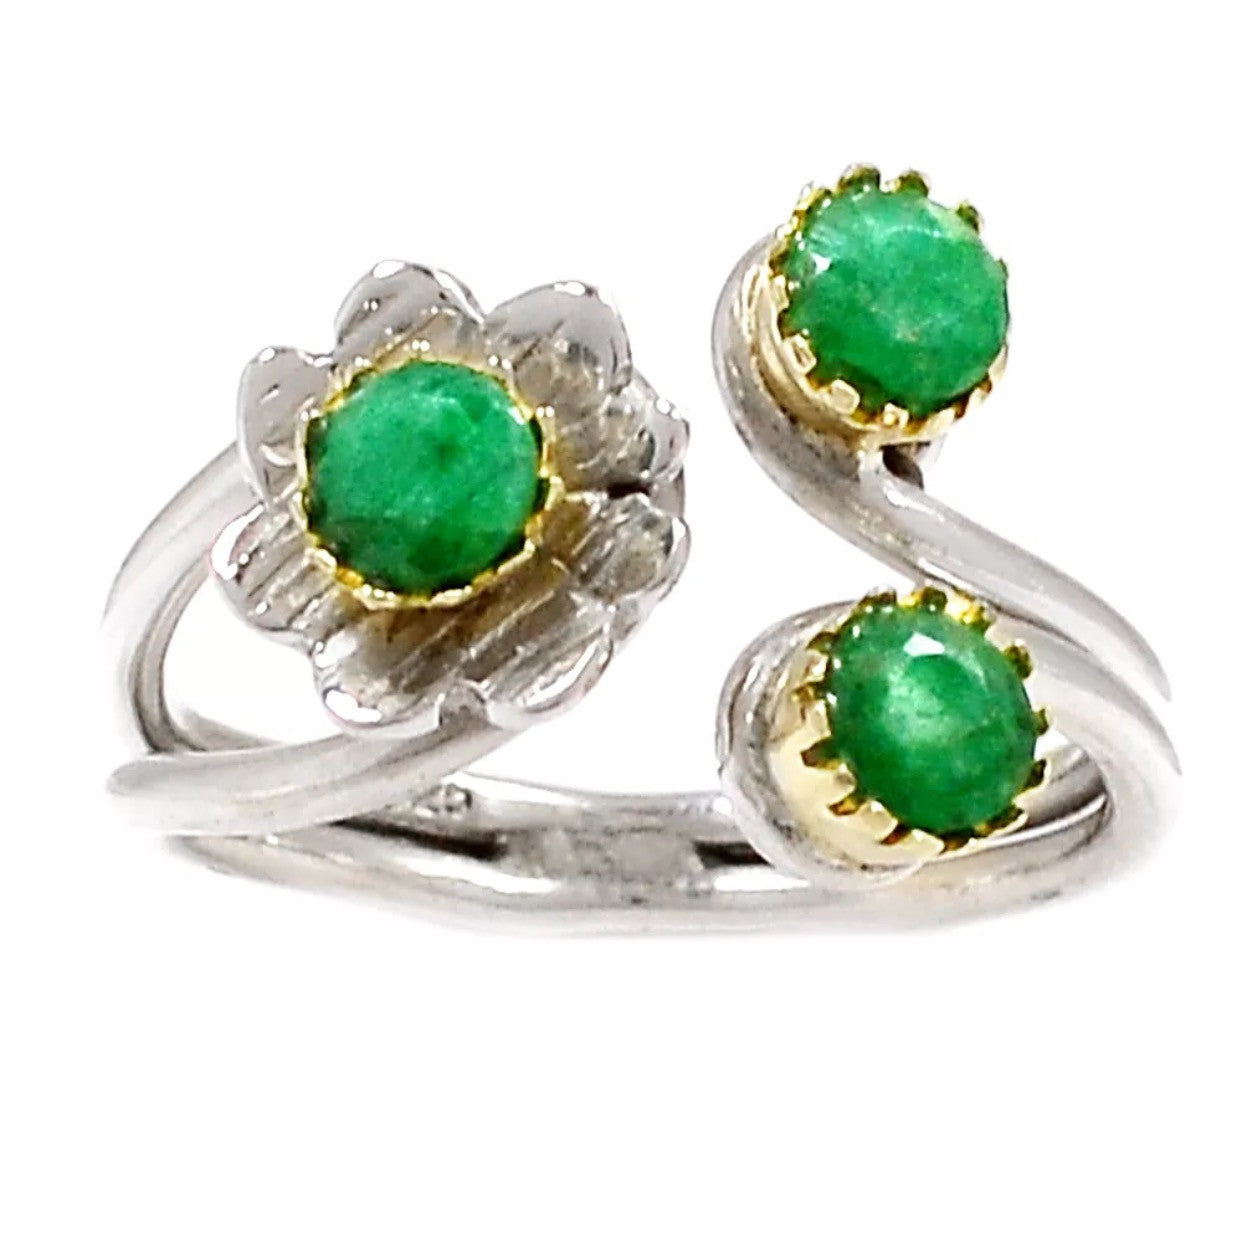 Emerald Two Tone Sterling Silver Adjustable Floral Ring - Keja Designs Jewelry